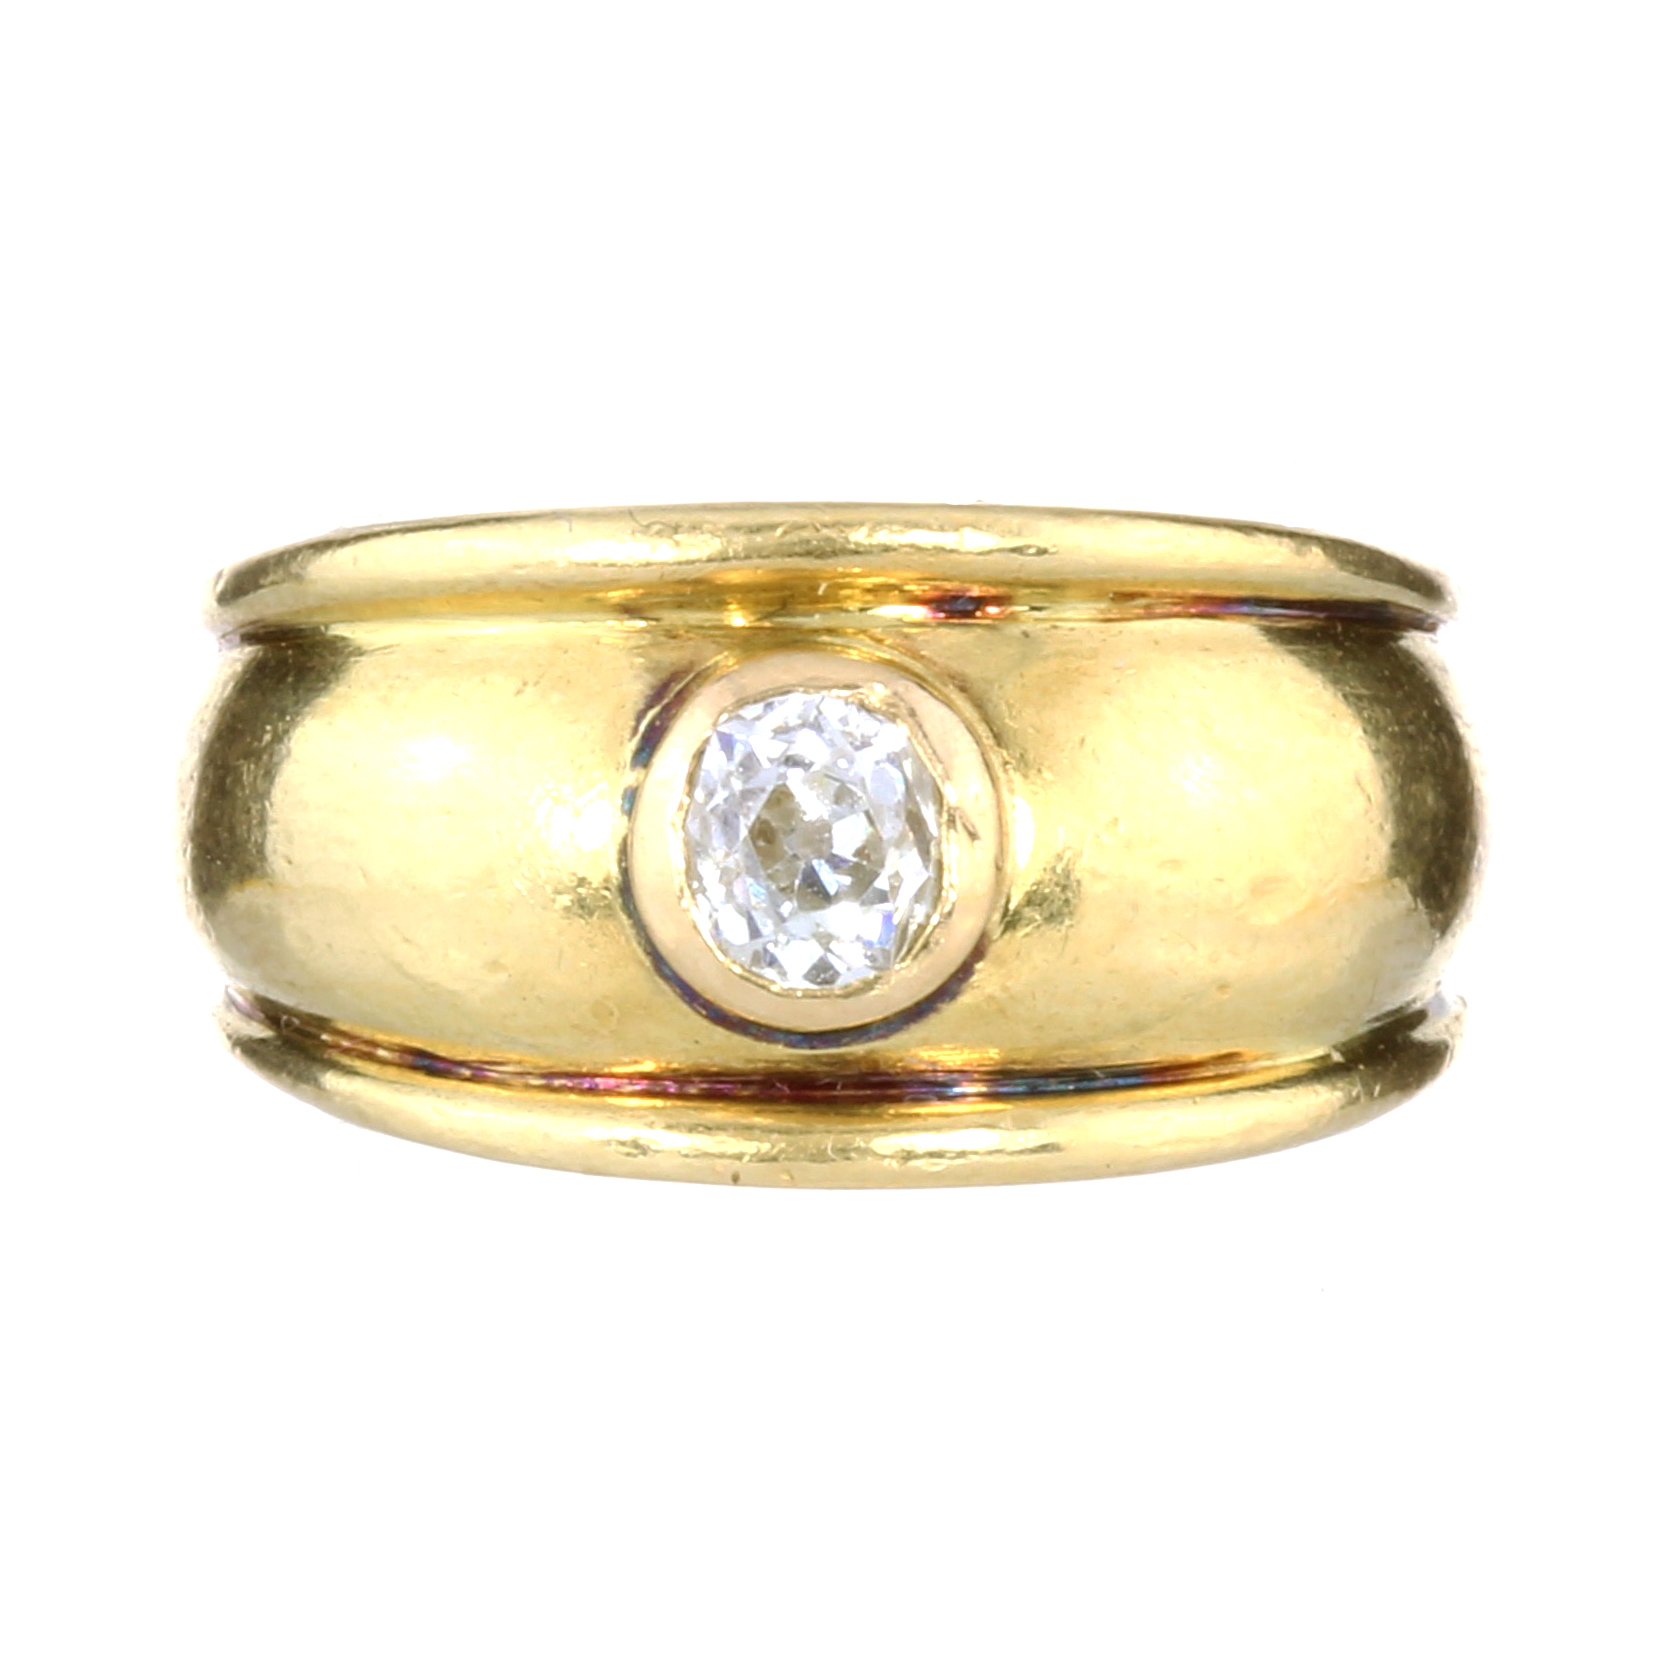 AN ANTIQUE 0.50 CARAT SOLITAIRE DIAMOND RING in 18ct yellow gold, the thick band with ribbed